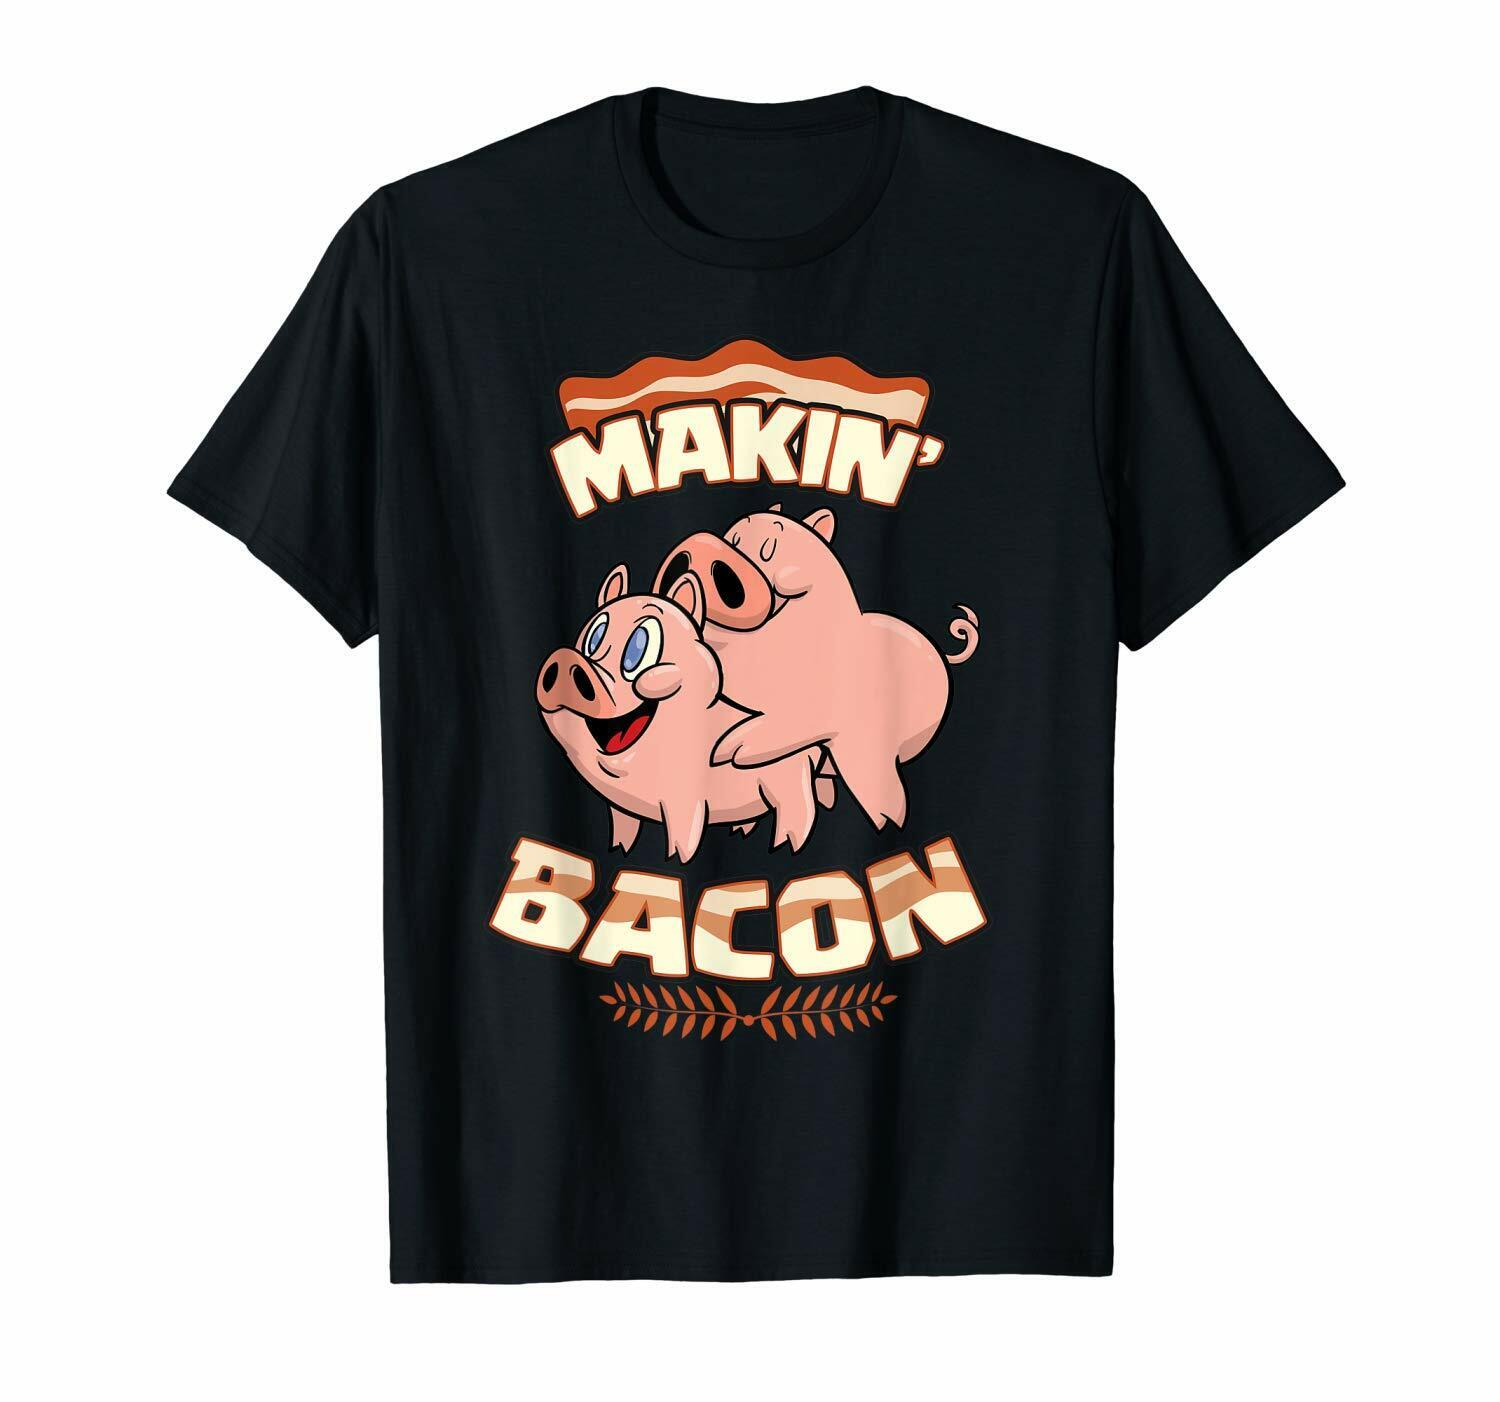 Makin Bacon Funny graphic T-shirt Adult humor tee P33